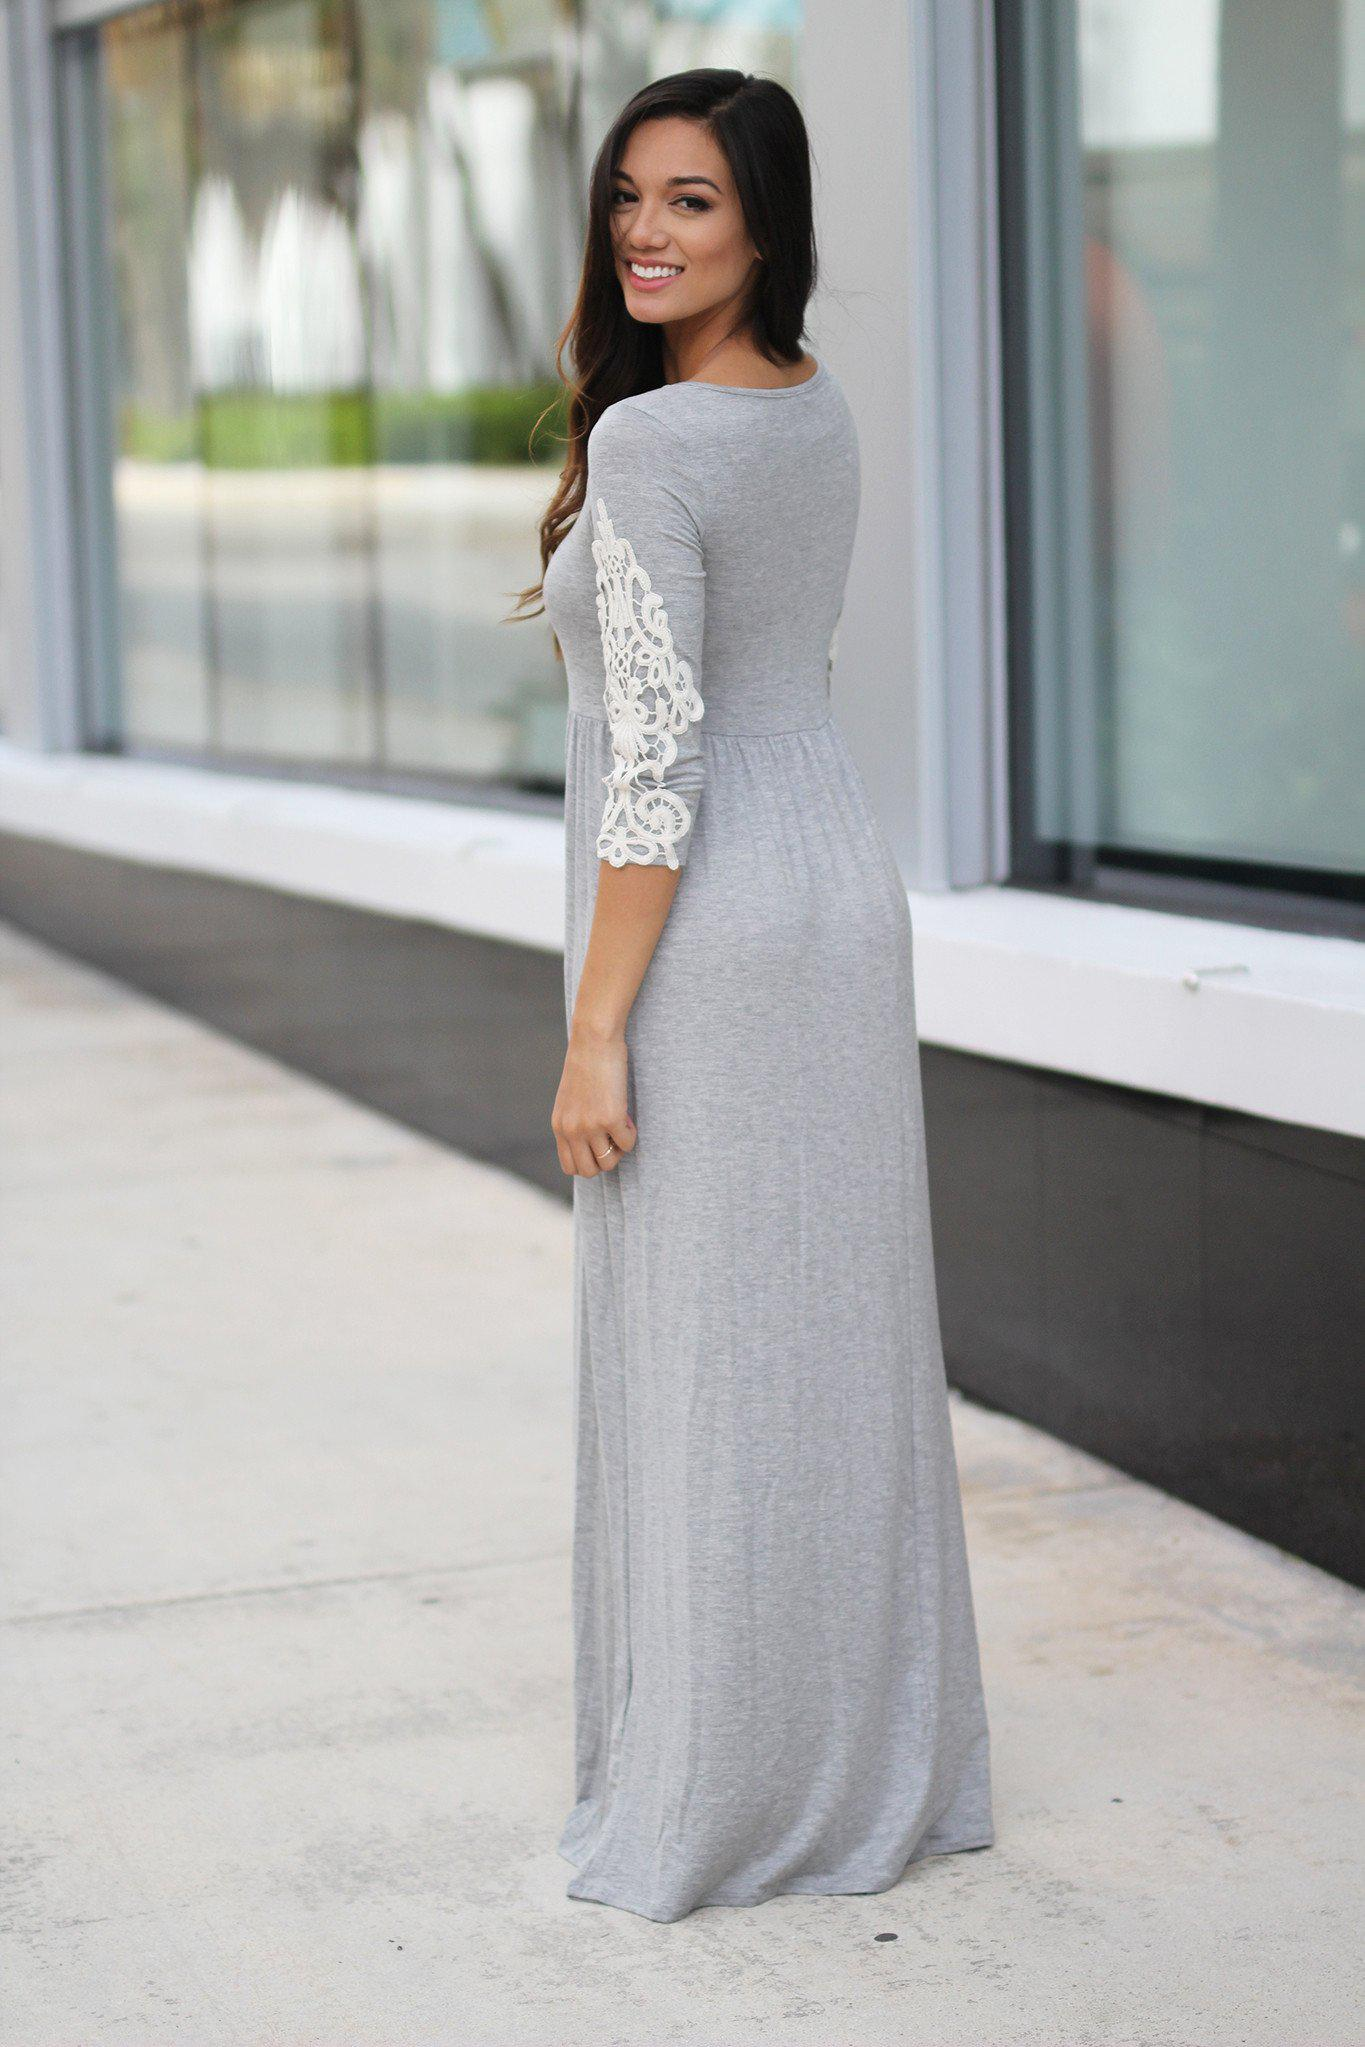 Heather Gray Maxi Dress with Crochet Sleeves